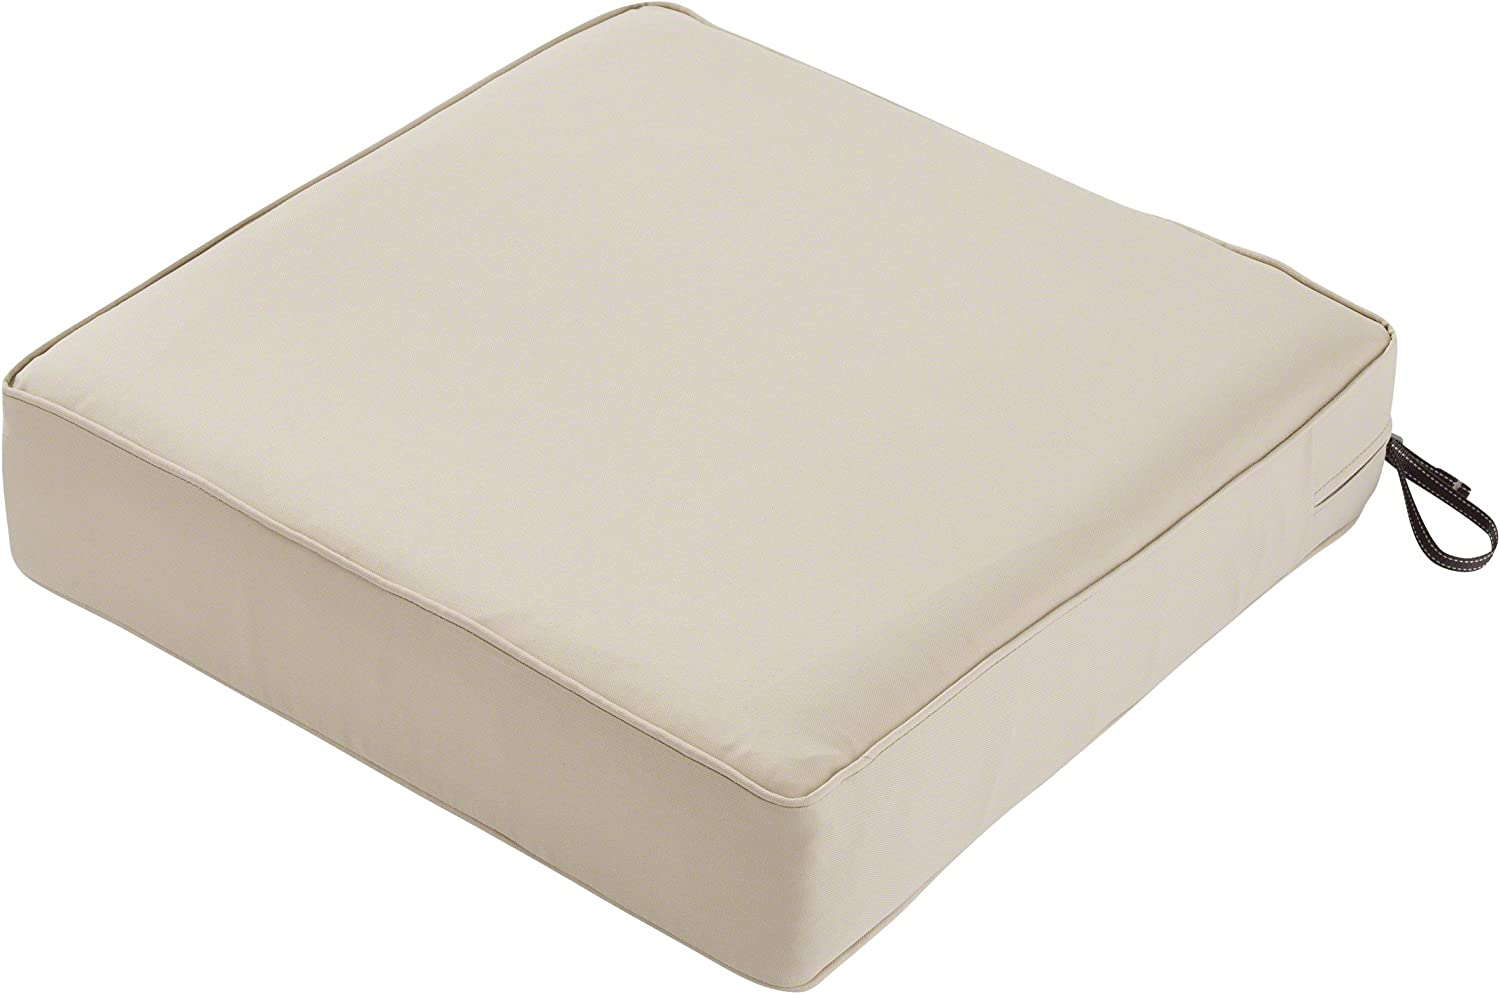 Classic Accessories Montlake Water-Resistant 23 x 23 x 5 Inch Square Outdoor Seat Cushion, Patio Furniture Chair Cushion, Antique Beige